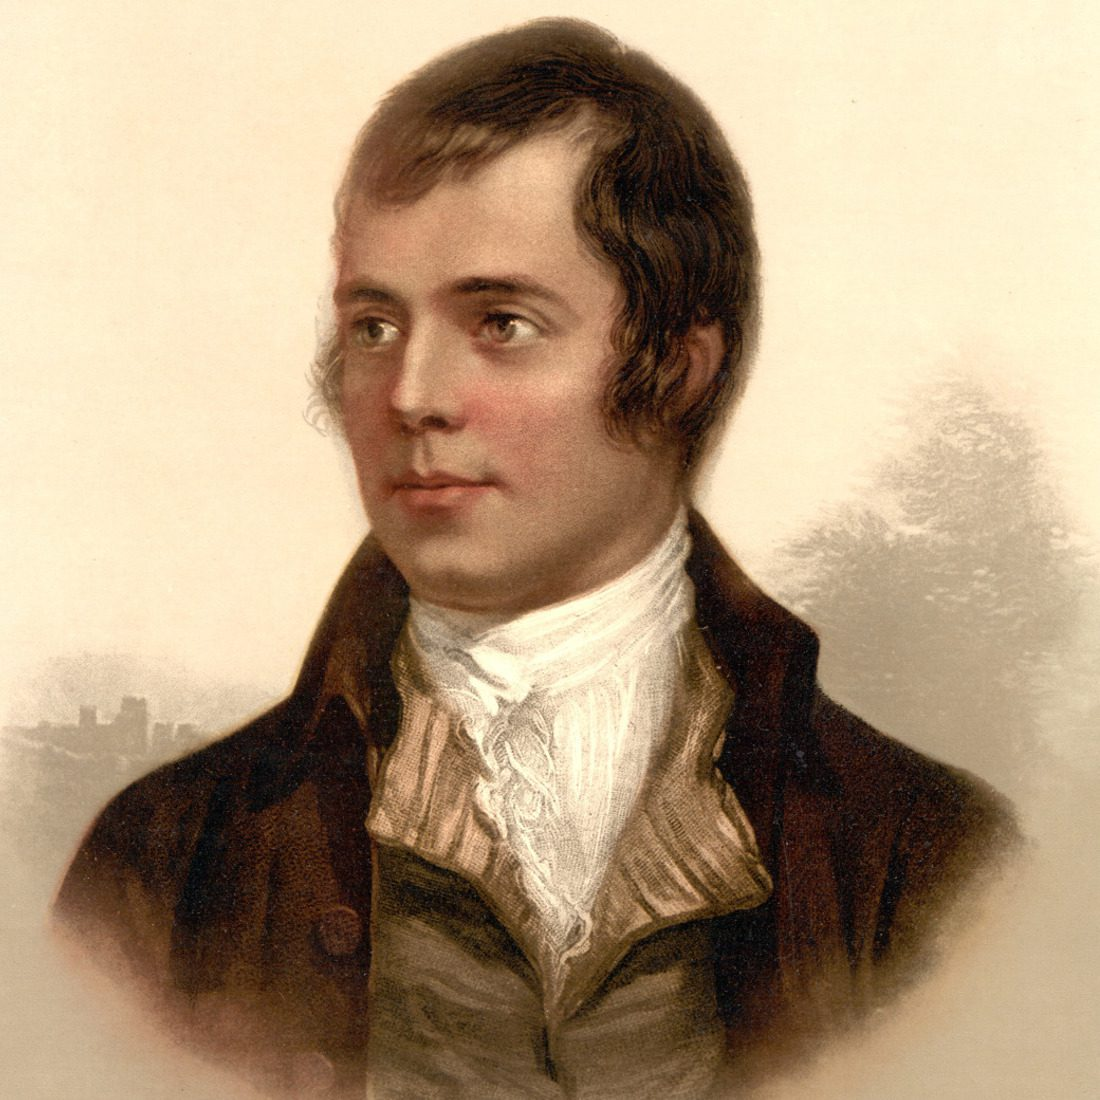 portrait_of_robert_burns_ayr_scotland